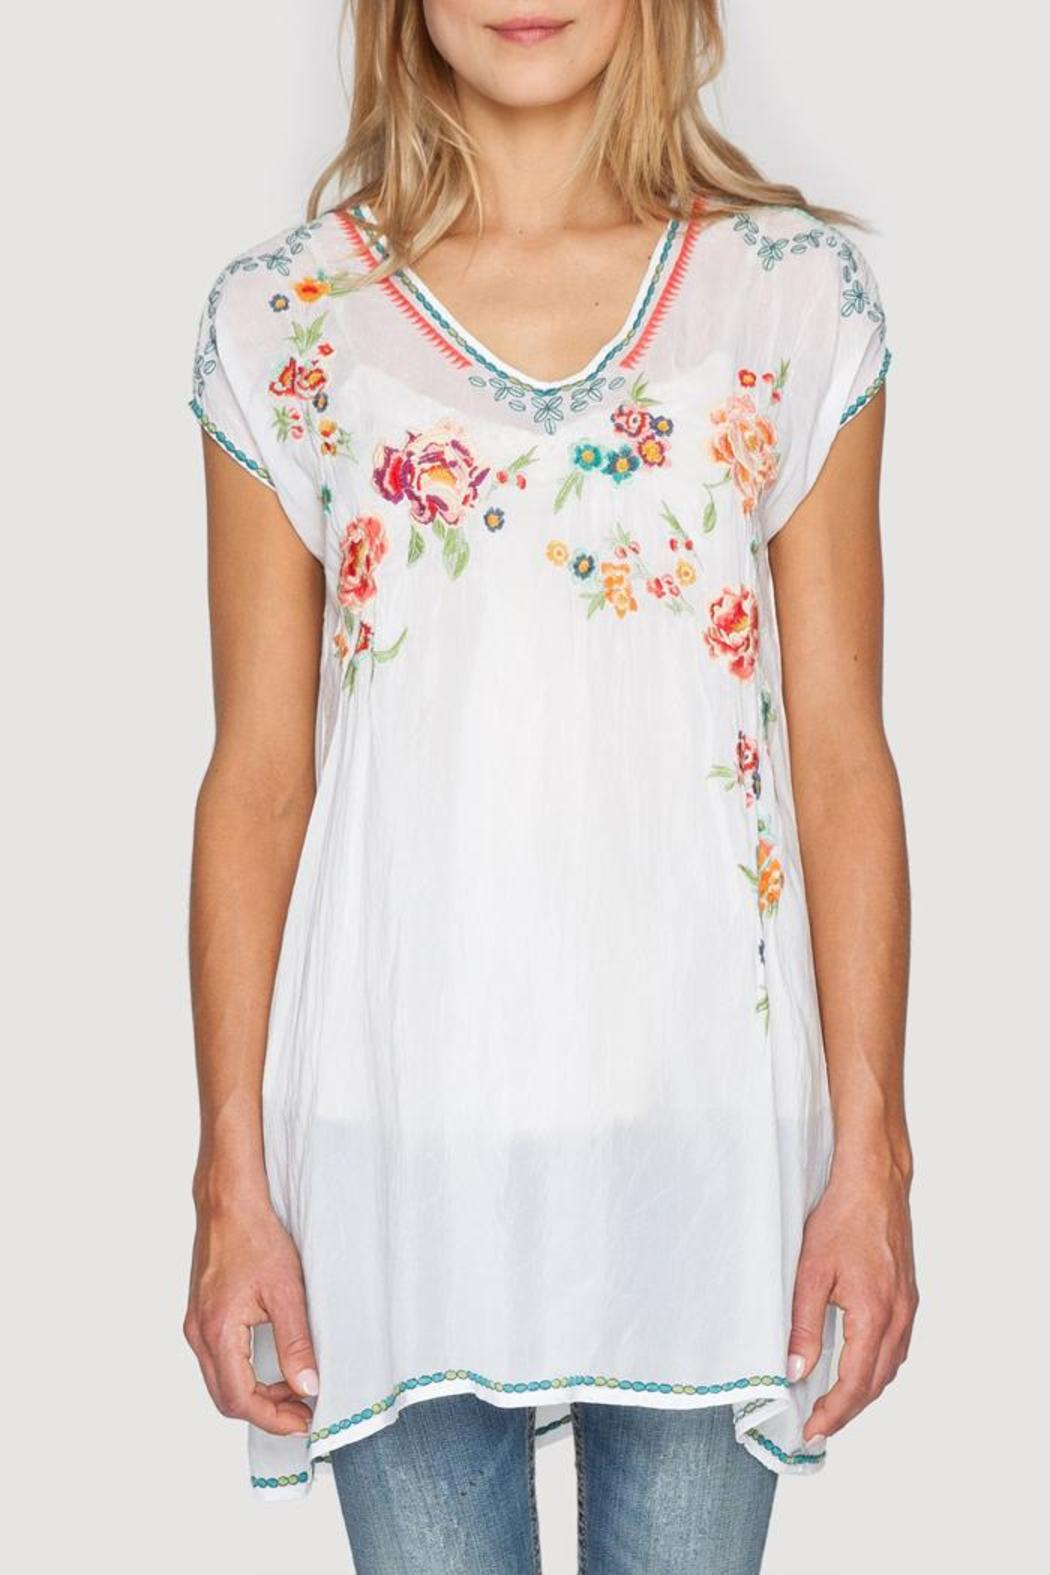 Find womens rayon blouses at ShopStyle. Shop the latest collection of womens rayon blouses from the most popular stores - all in one place.